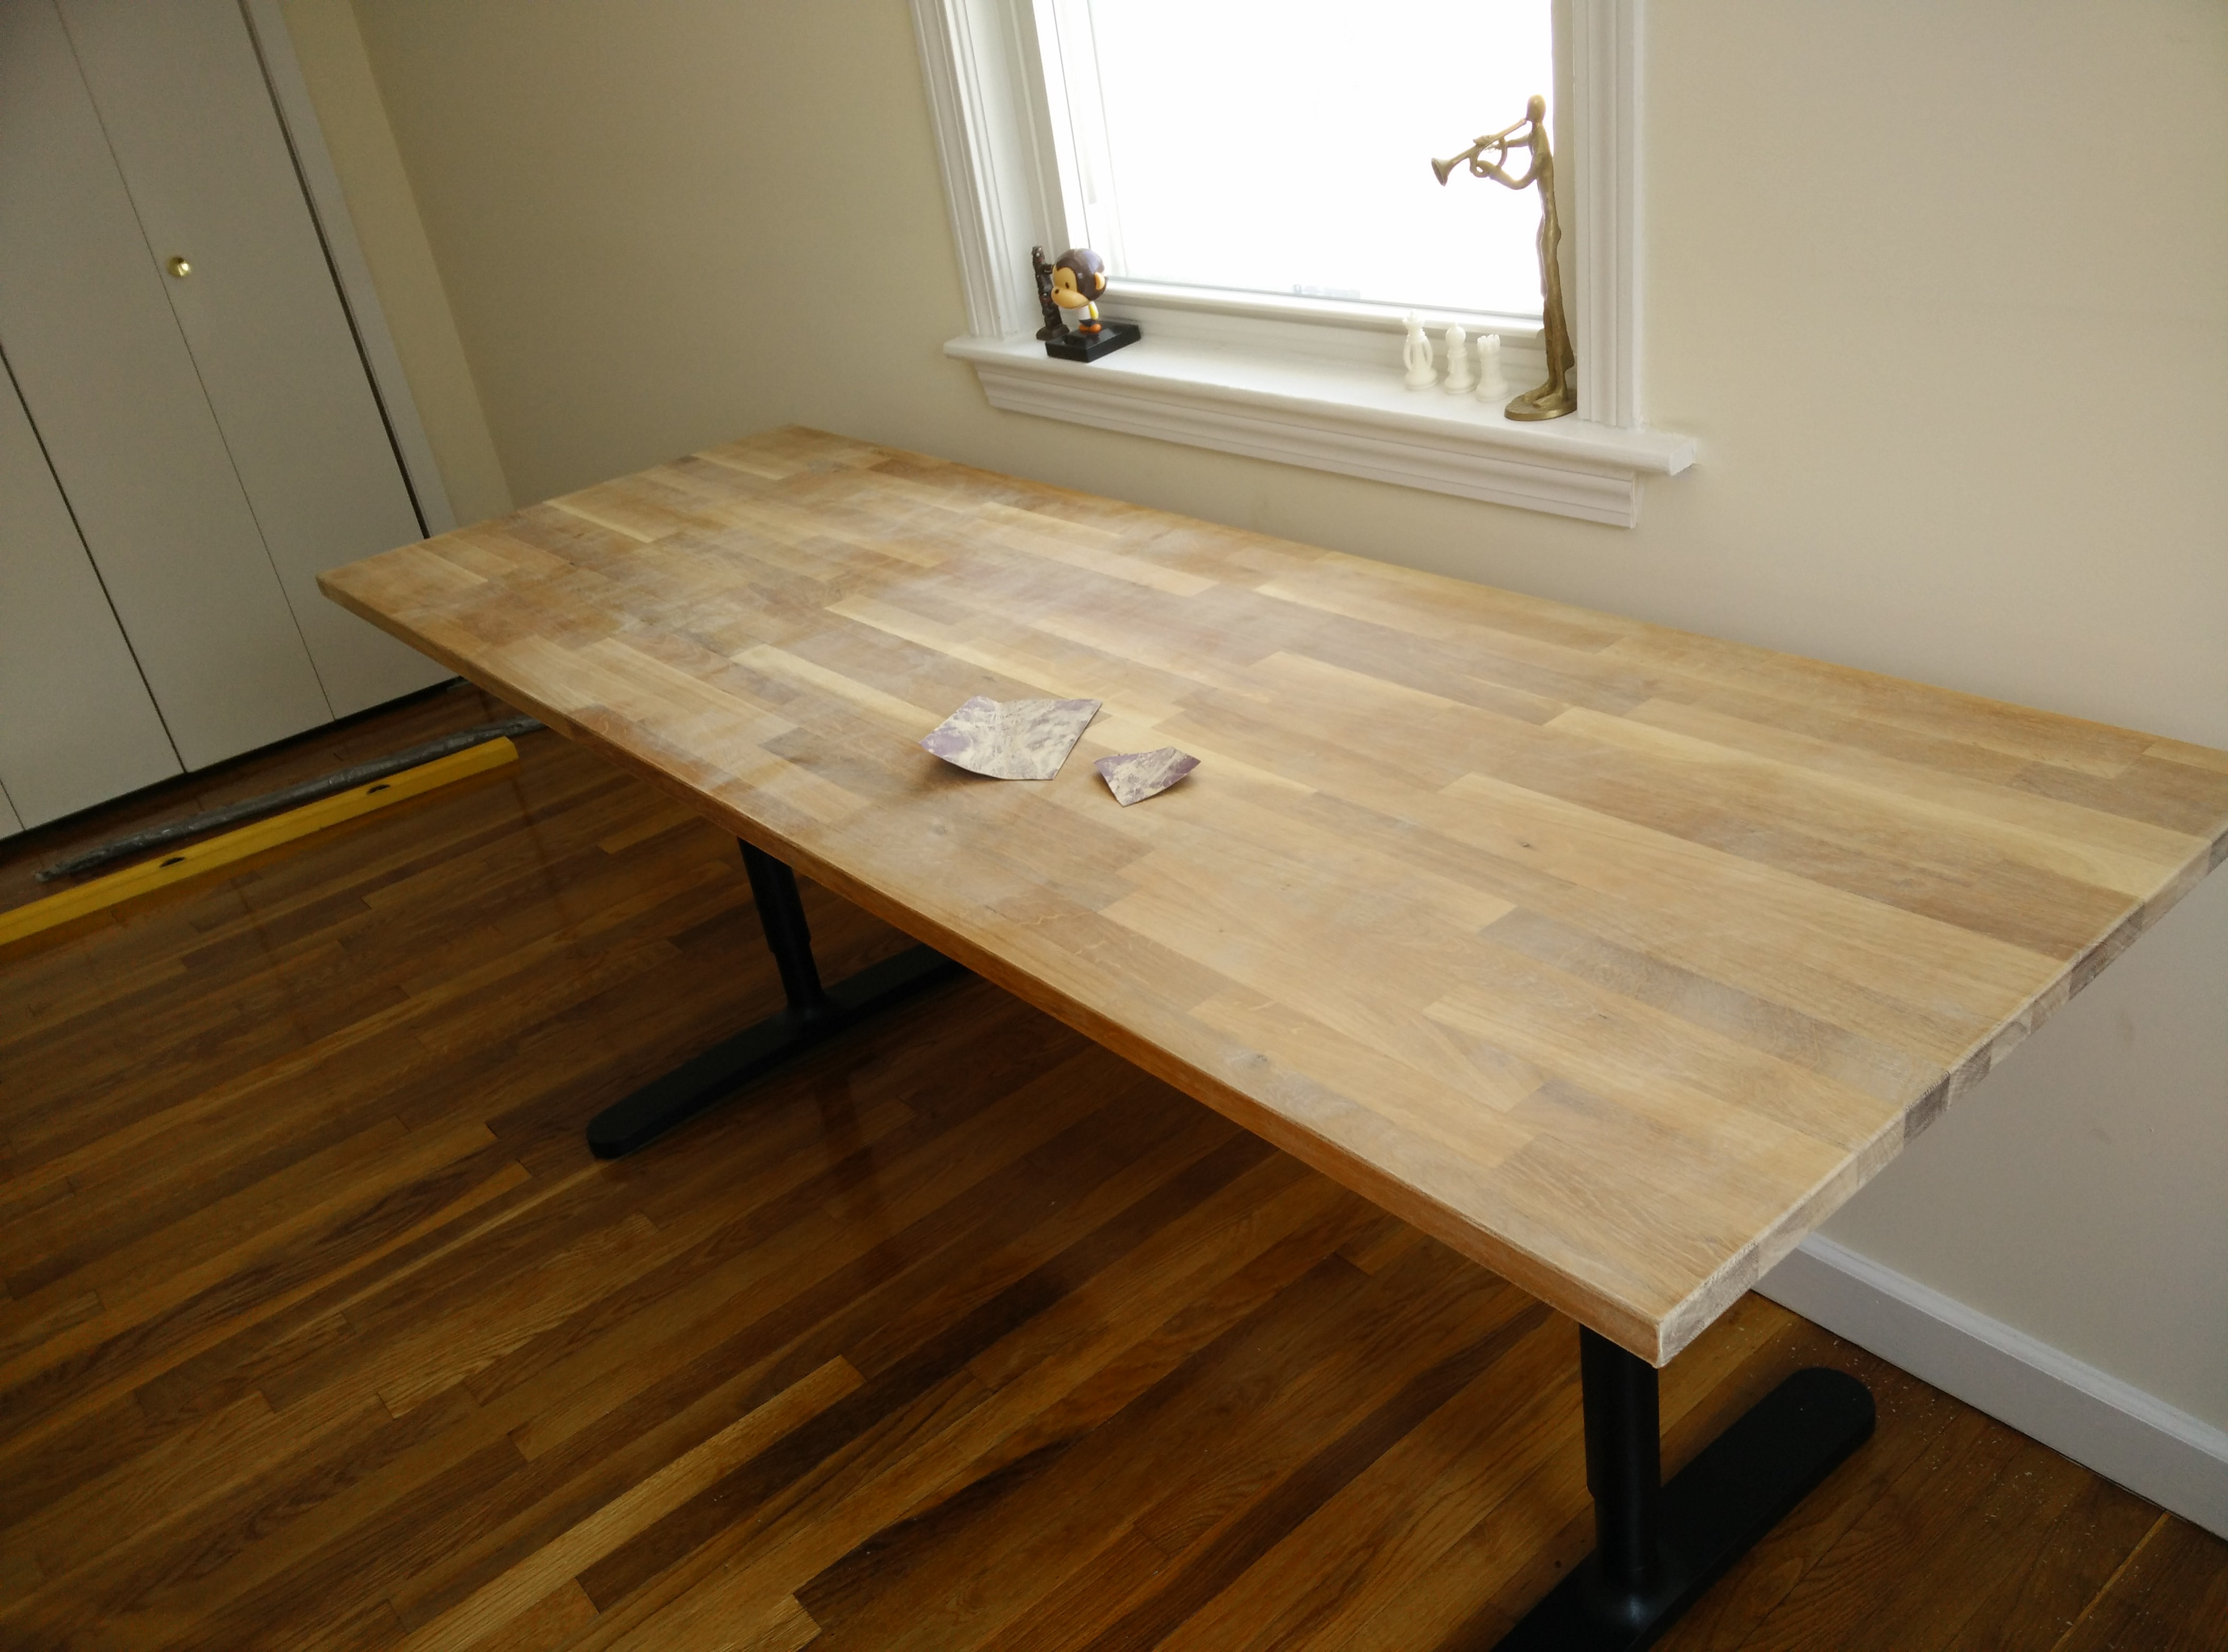 Butcher Block Countertop Table Ikea Hack 4 Steps With Pictures Instructables